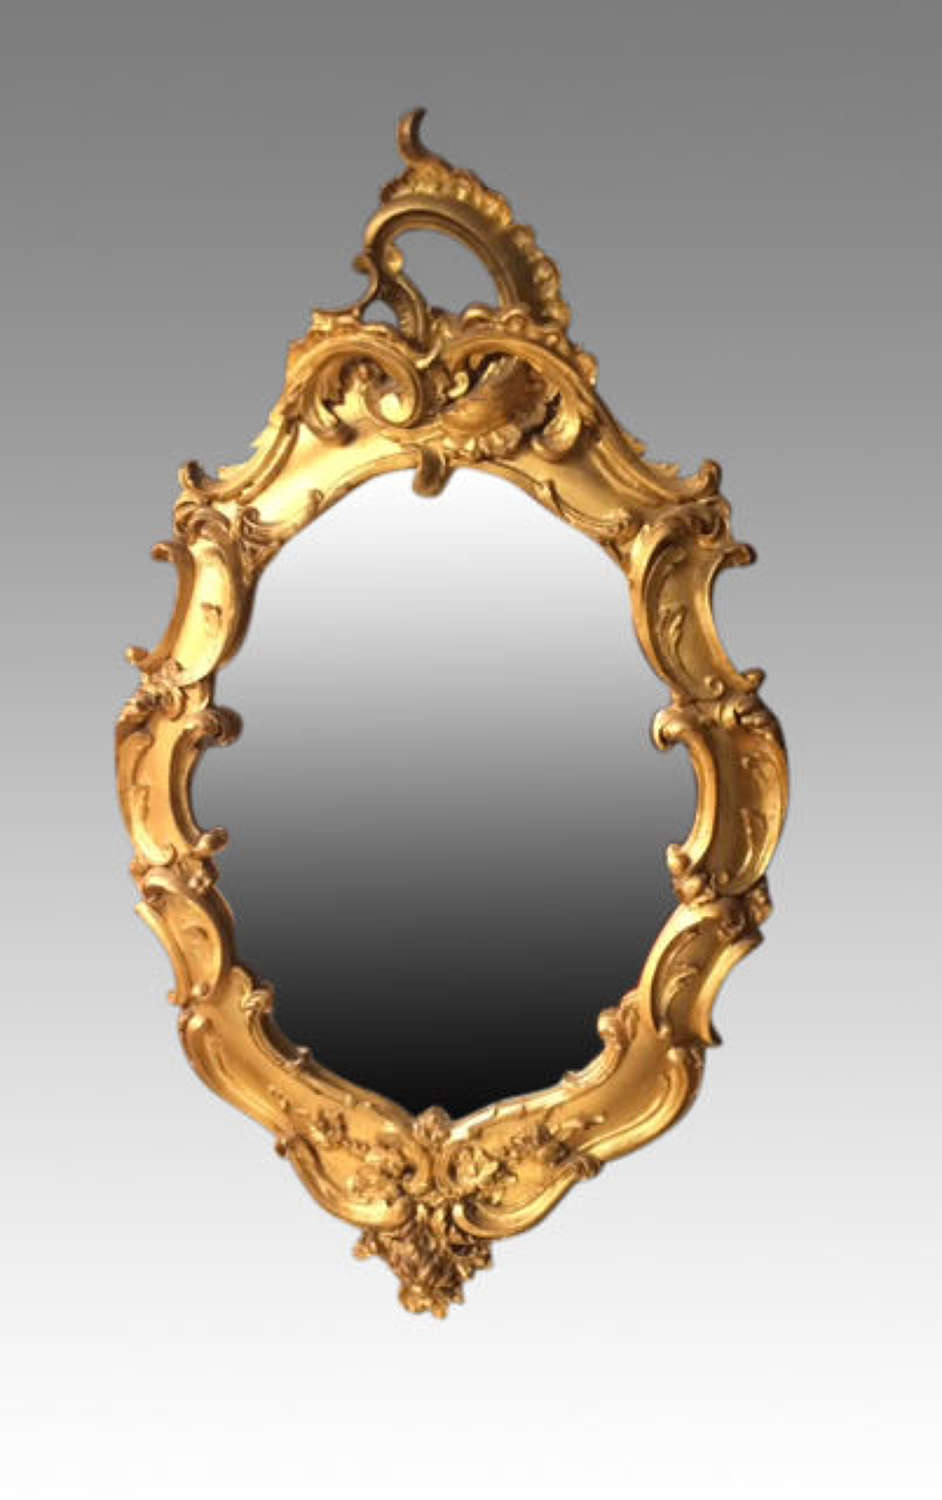 19th century oval carved giltwood mirror.